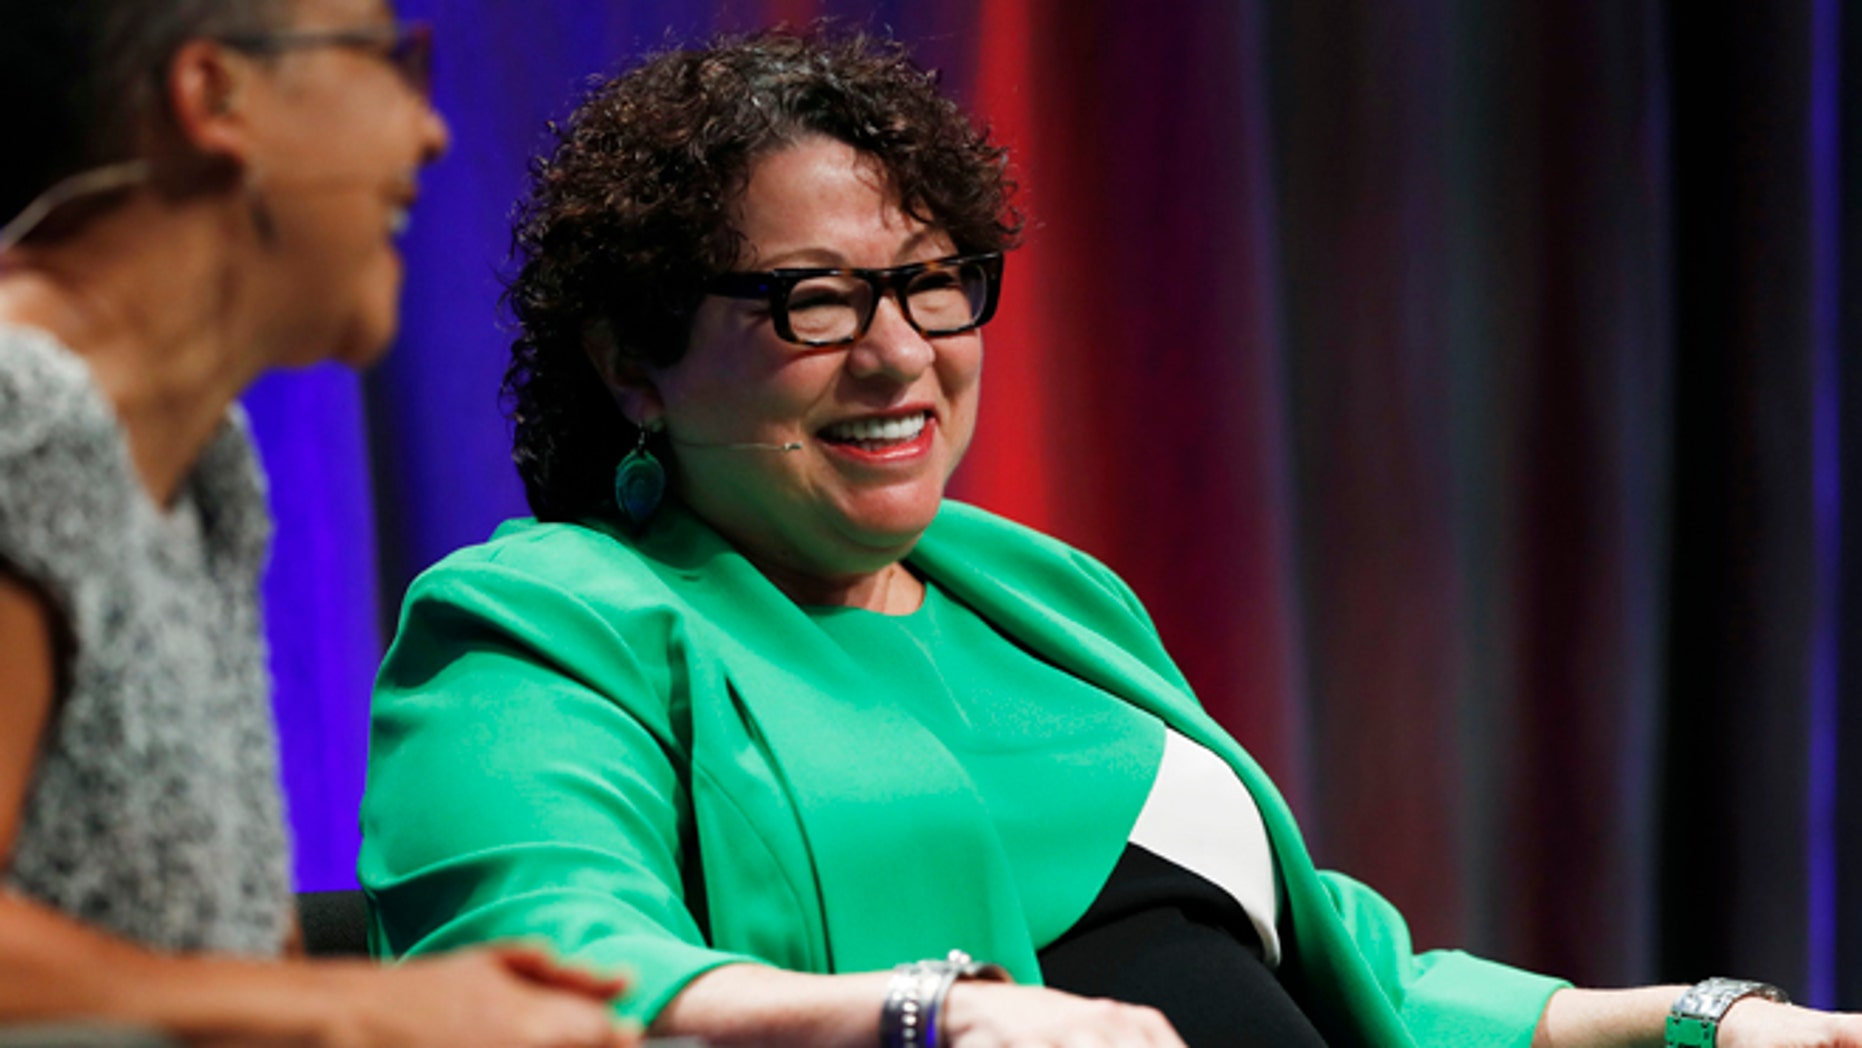 Supreme Court Justice Sonia Sotomayor jokes with Lauren Casteel during an appearance on the campus of Metropolitan State University, Thursday, Sept. 1, 2016, in Denver. (AP Photo/David Zalubowski)